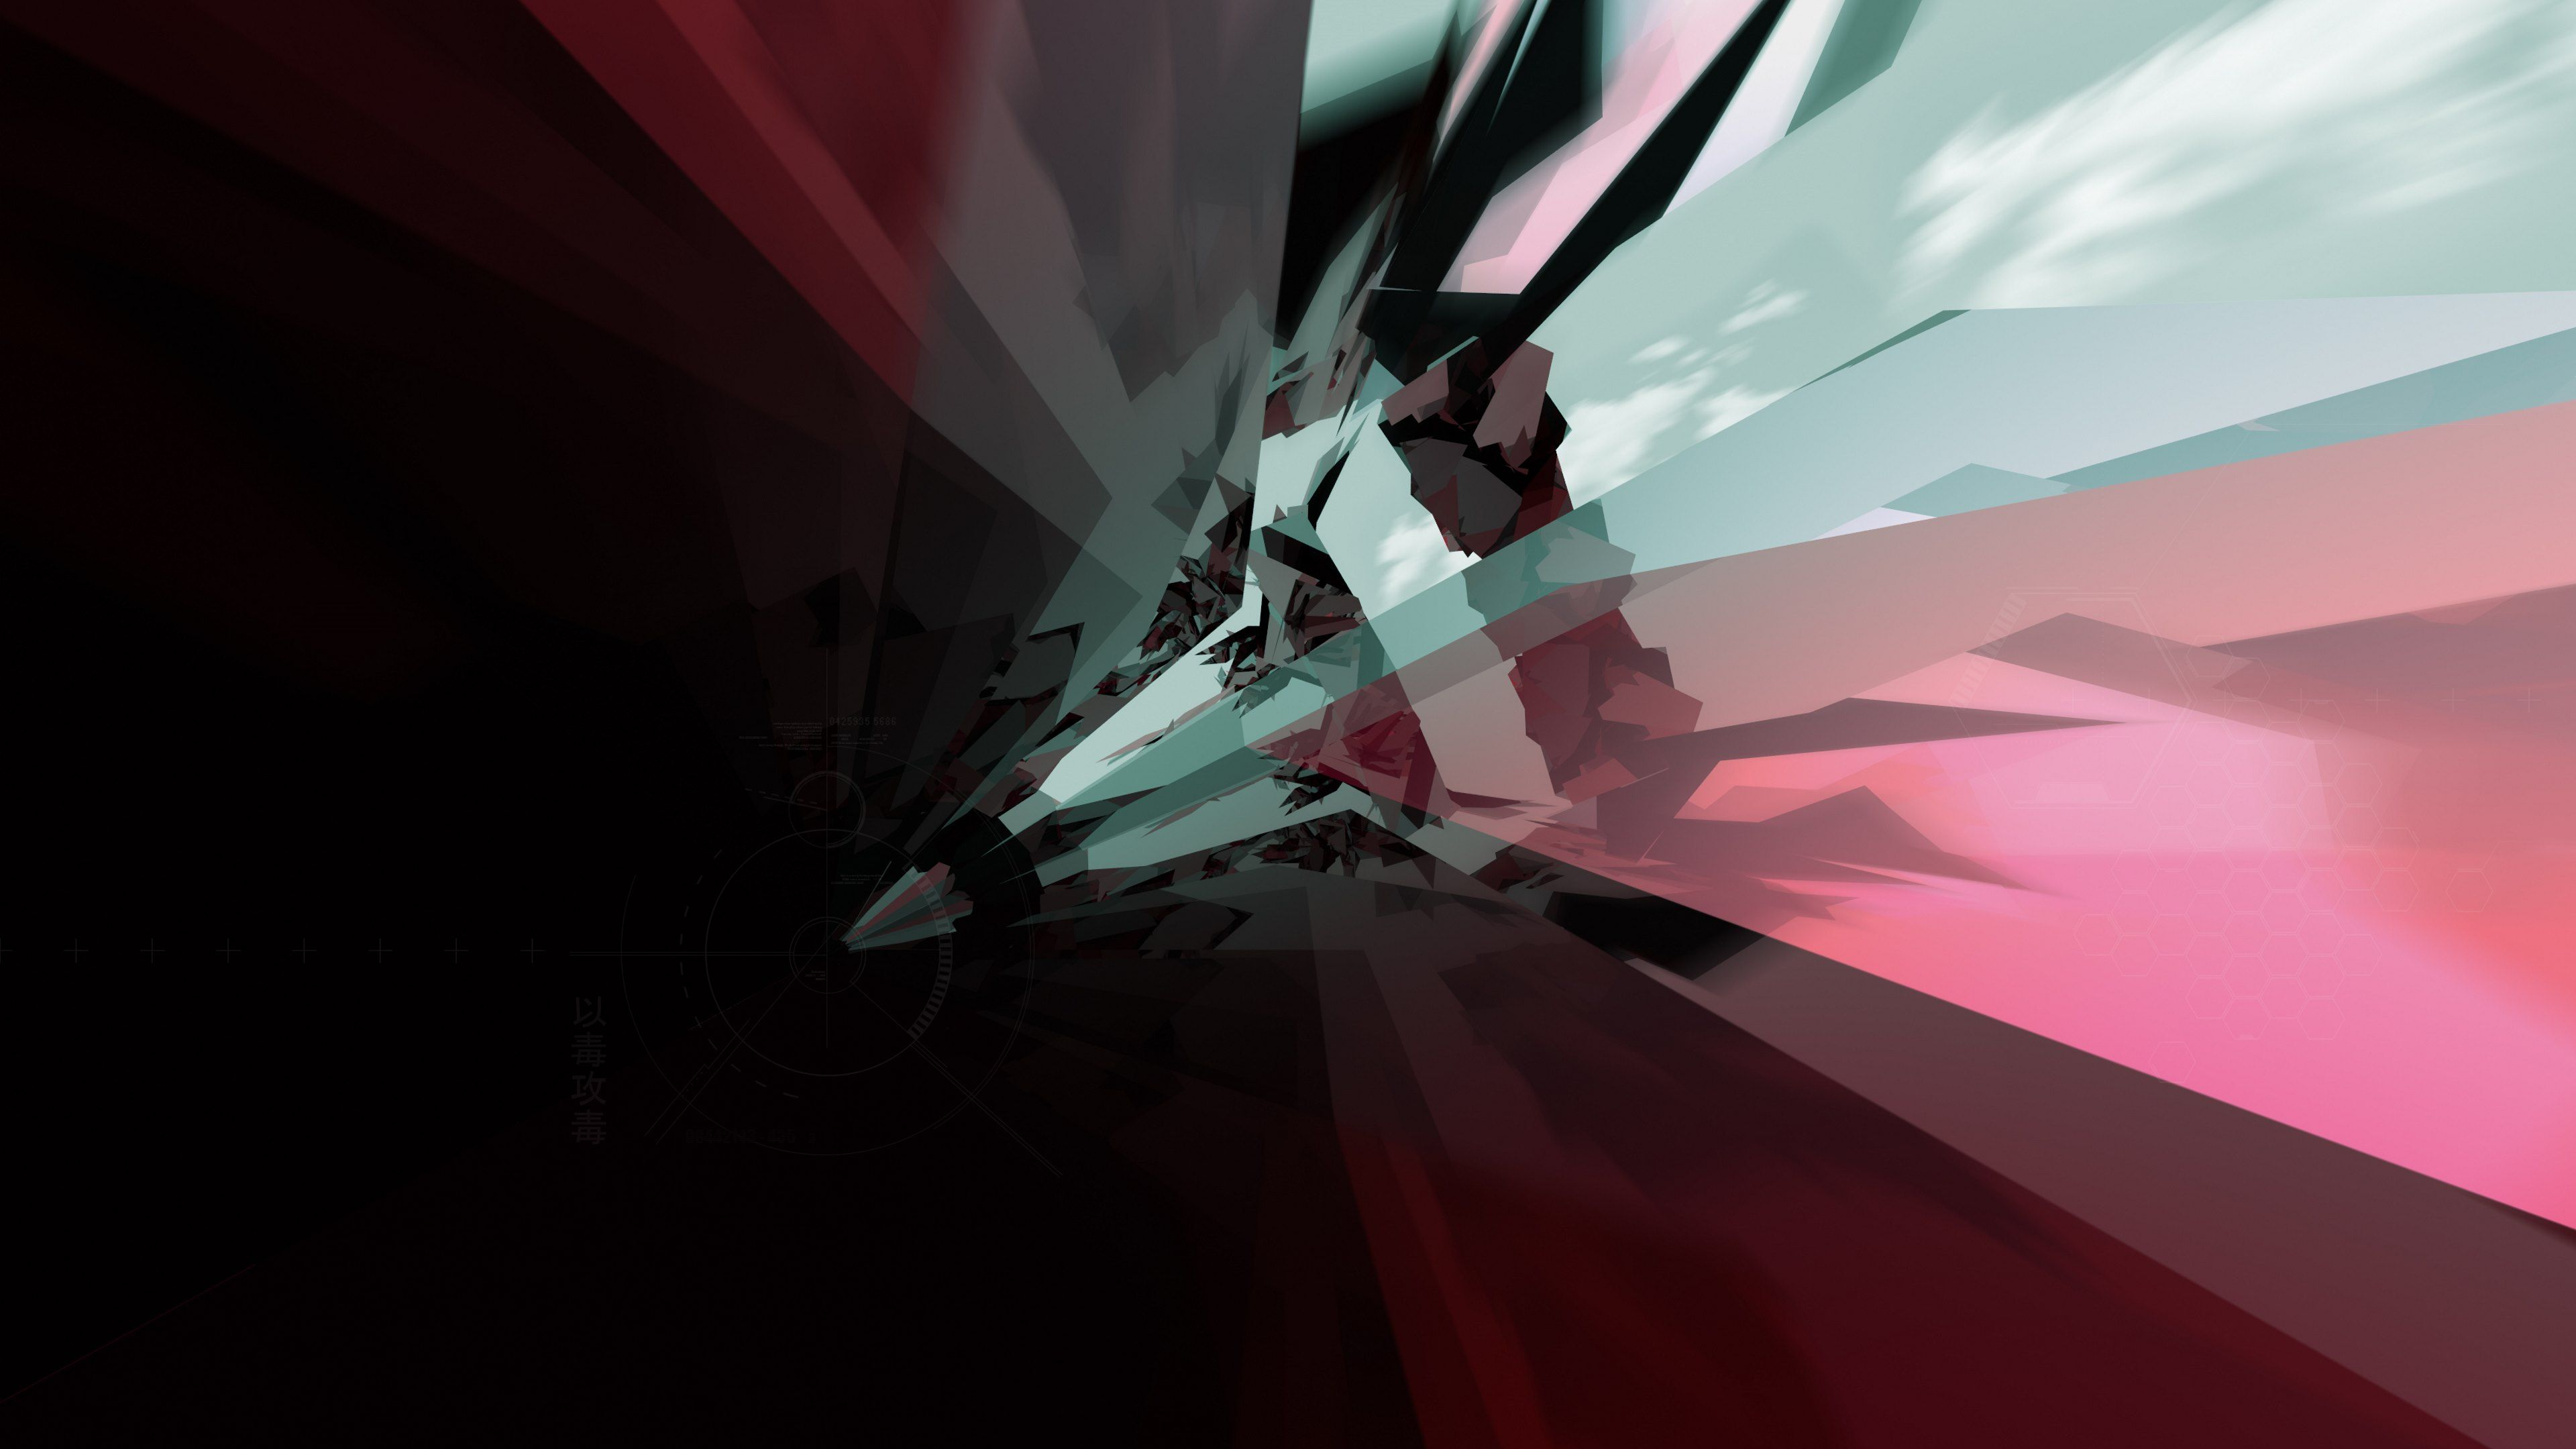 Wallpapers In High Quality - 4k Ultra Uhd Wallpapers Abstract - HD Wallpaper